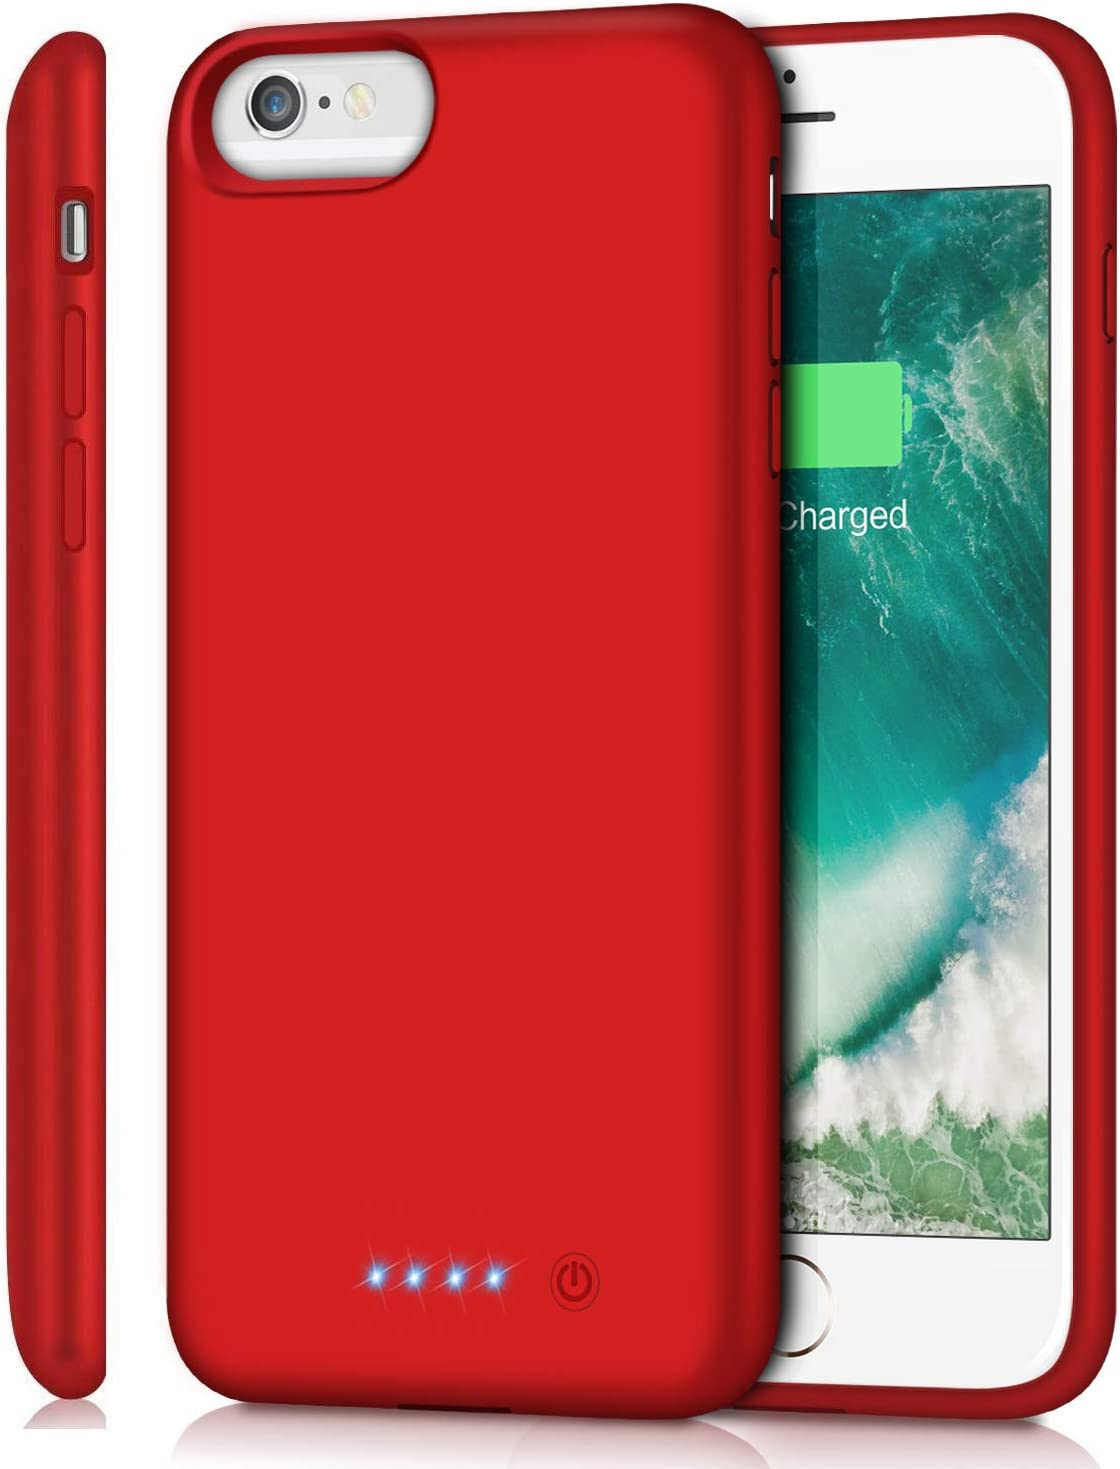 Battery Case for iPhone 6s Plus/6 Plus/7 Plus/8 Plus 8500mAh, Rechargeable Charging Case for iPhone 6Plus Extended Battery Pack Charger 6s Plus Portable Power Bankup Cover for 7P 8P (Red)